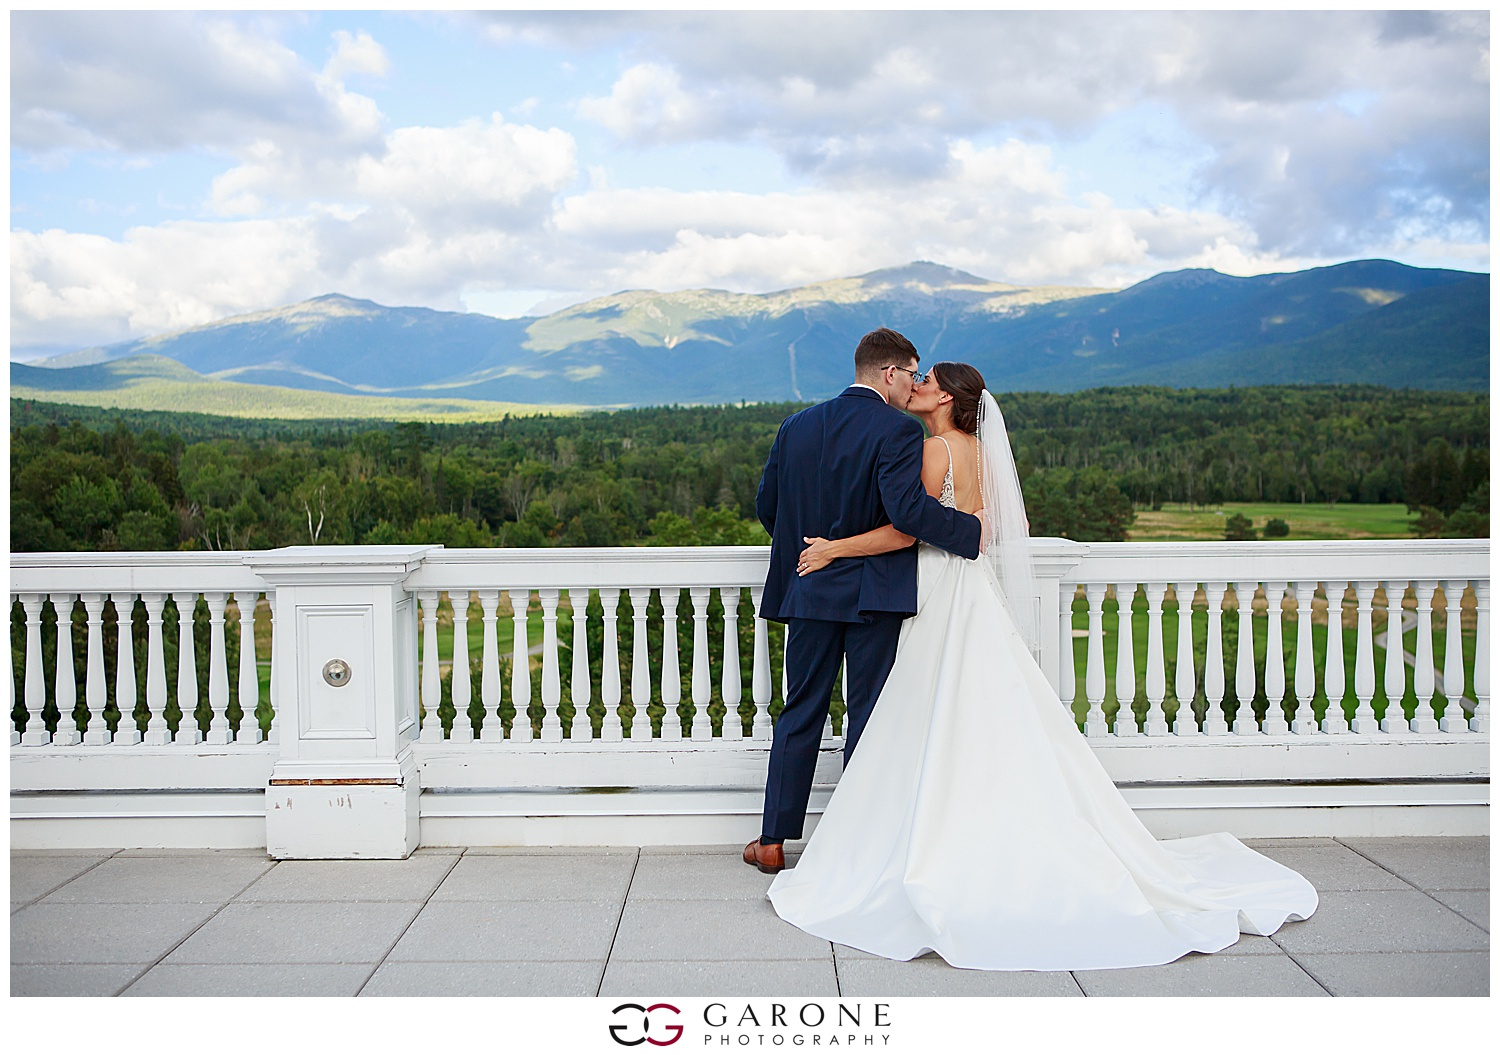 Omni_Mount_Washington_hotel_Wedding_White_Mountain_Wedding_Garone_Photography_0030.jpg